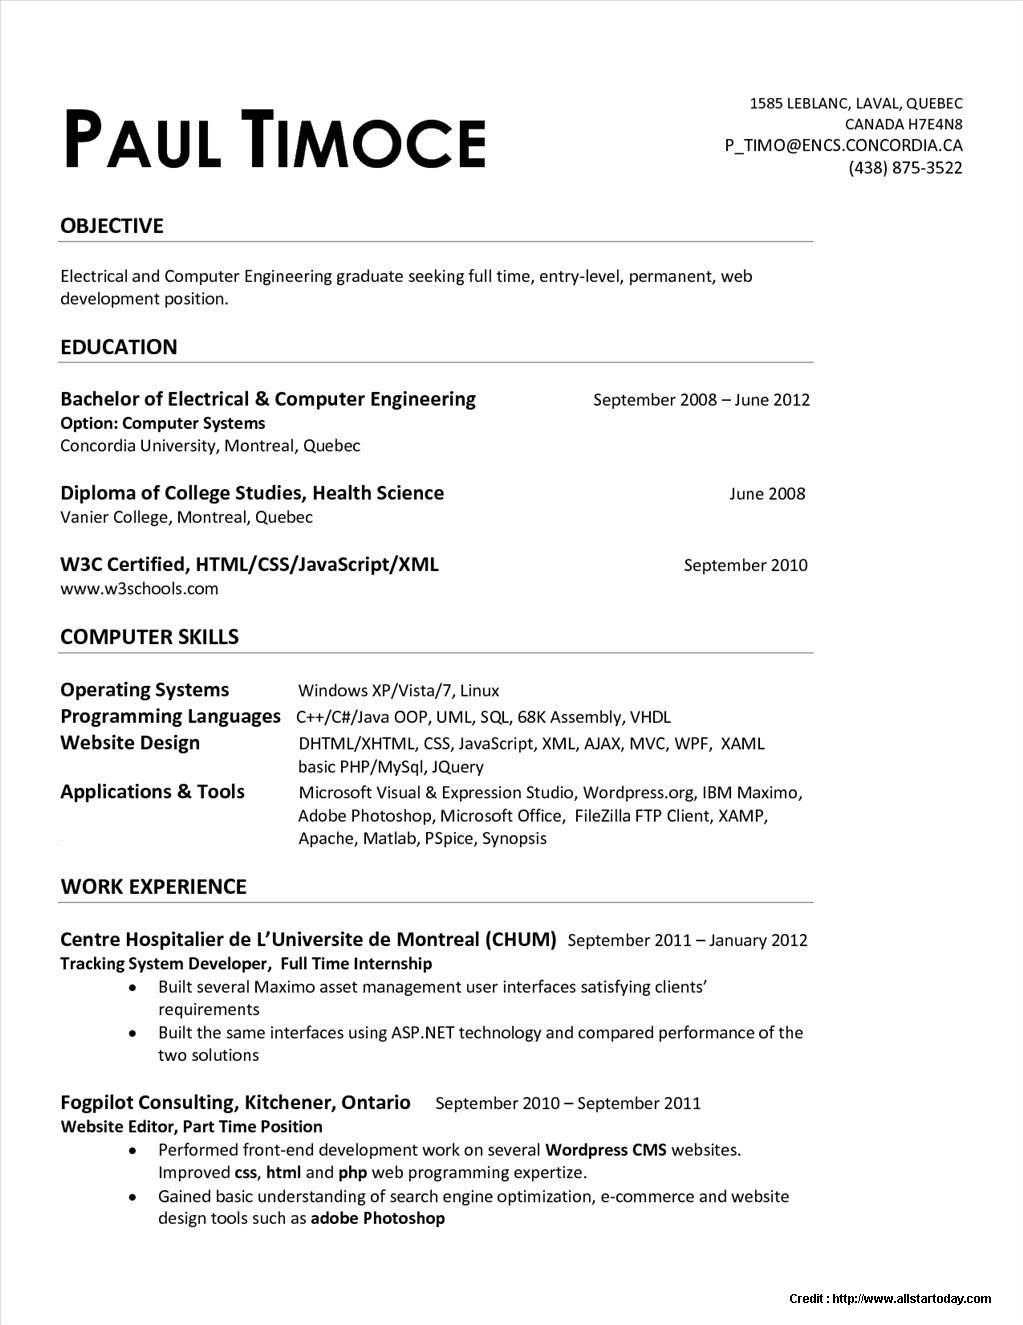 Resume Templates Quebec Resume Templates Engineering Resume Mechanical Engineer Resume Resume Writing Examples